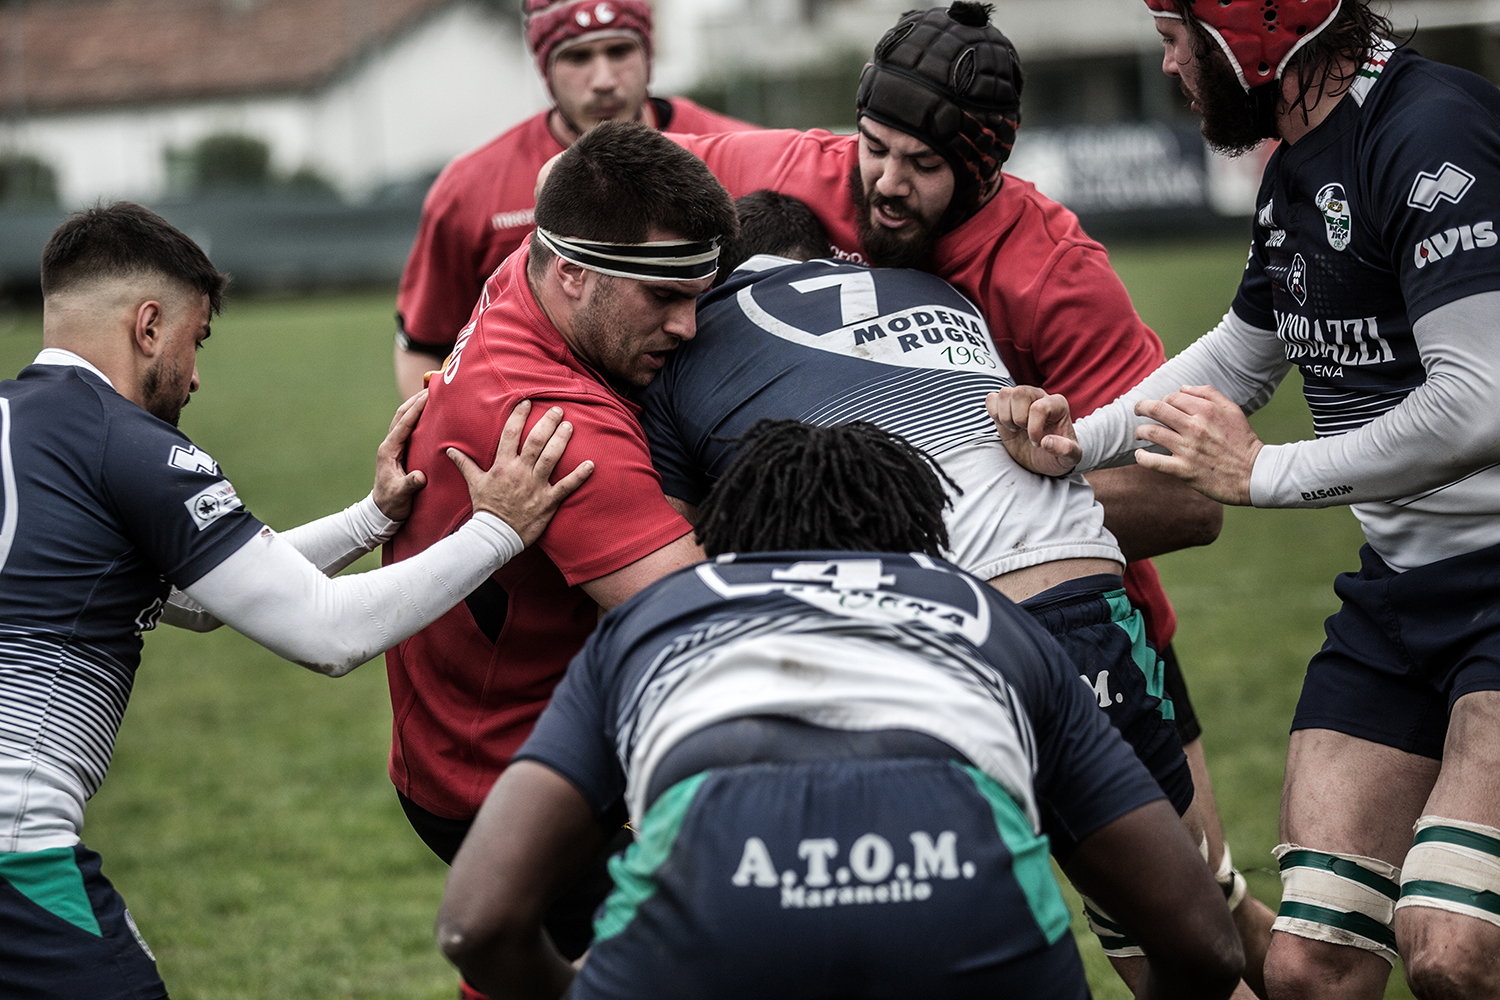 rugby_photograph_24.jpg